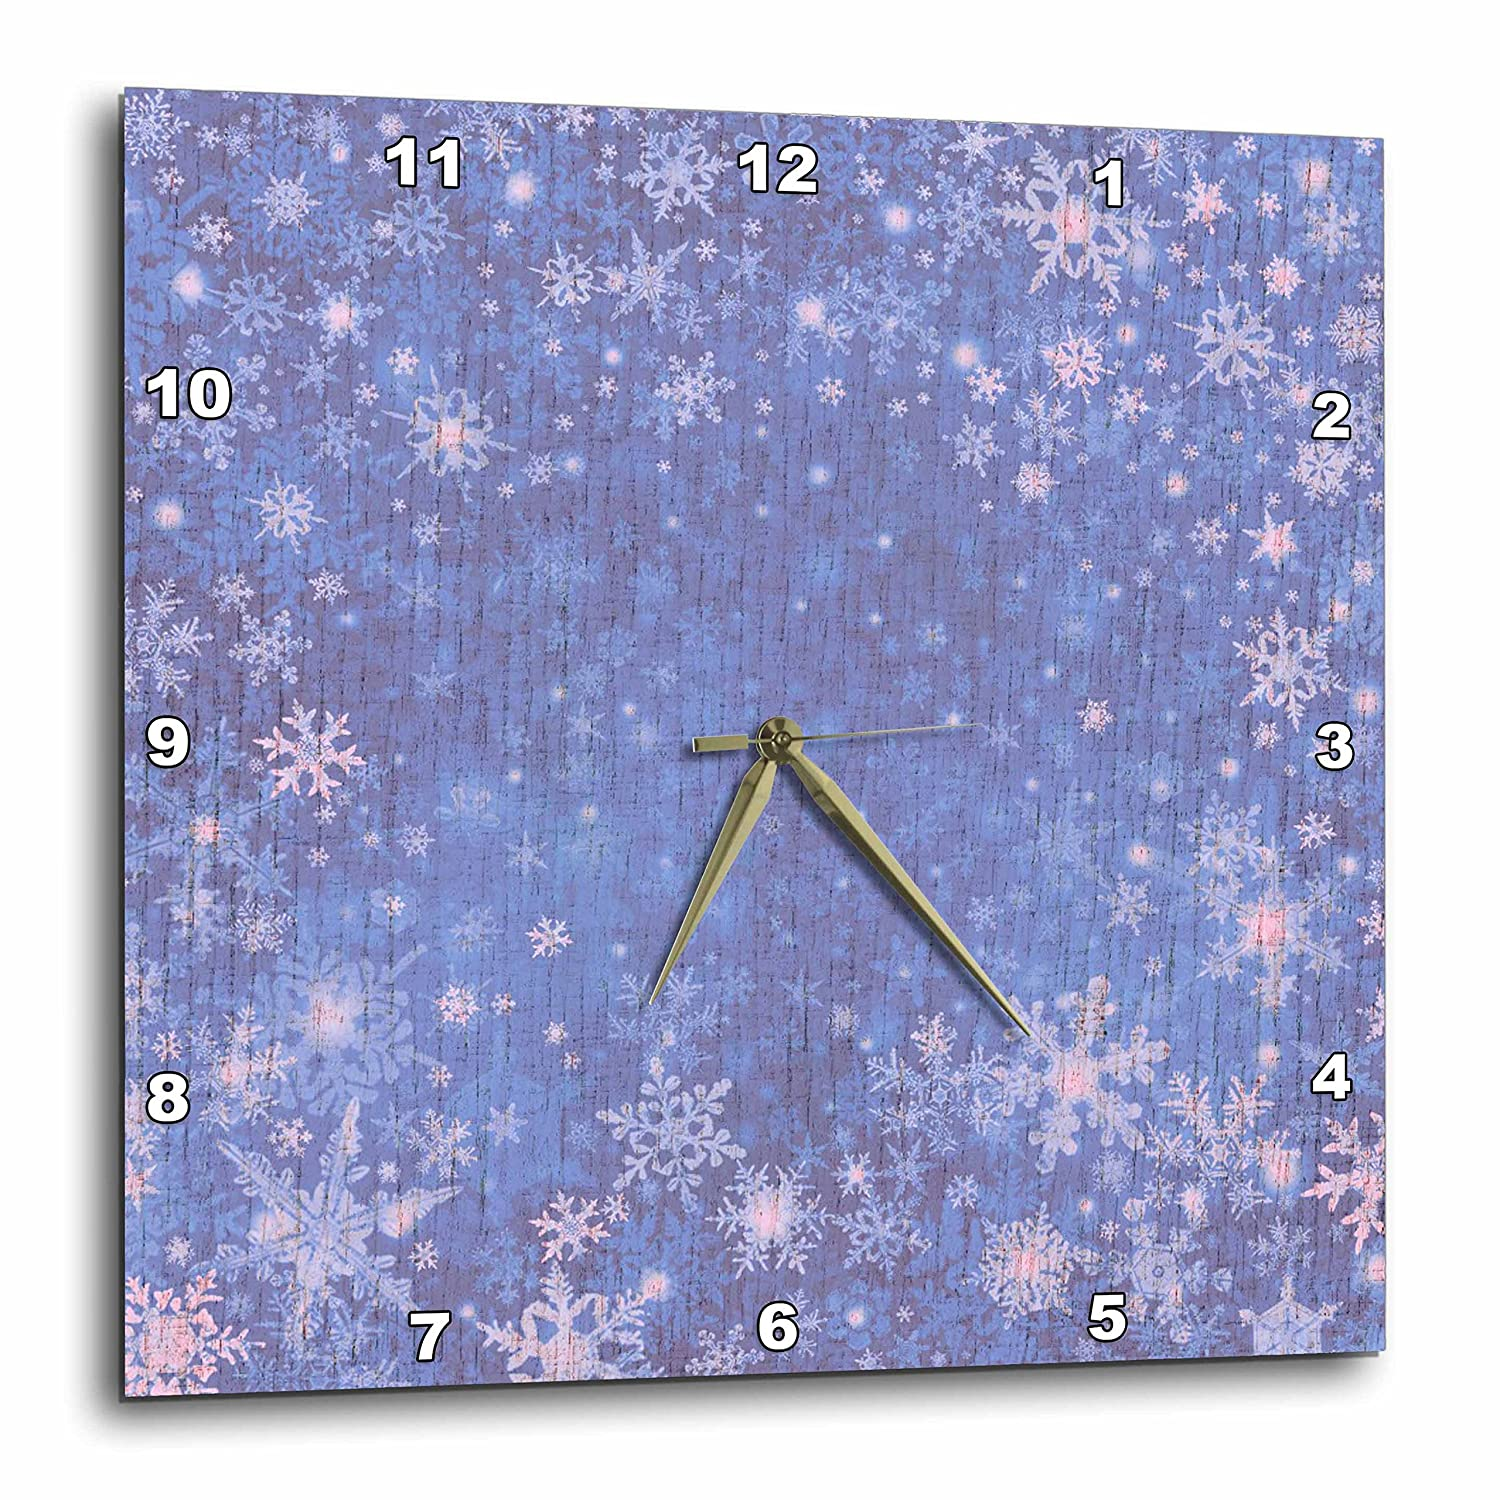 3dRose dpp/_28110/_3 Blue Snowflakes-Wall Clock 15 by 15-Inch